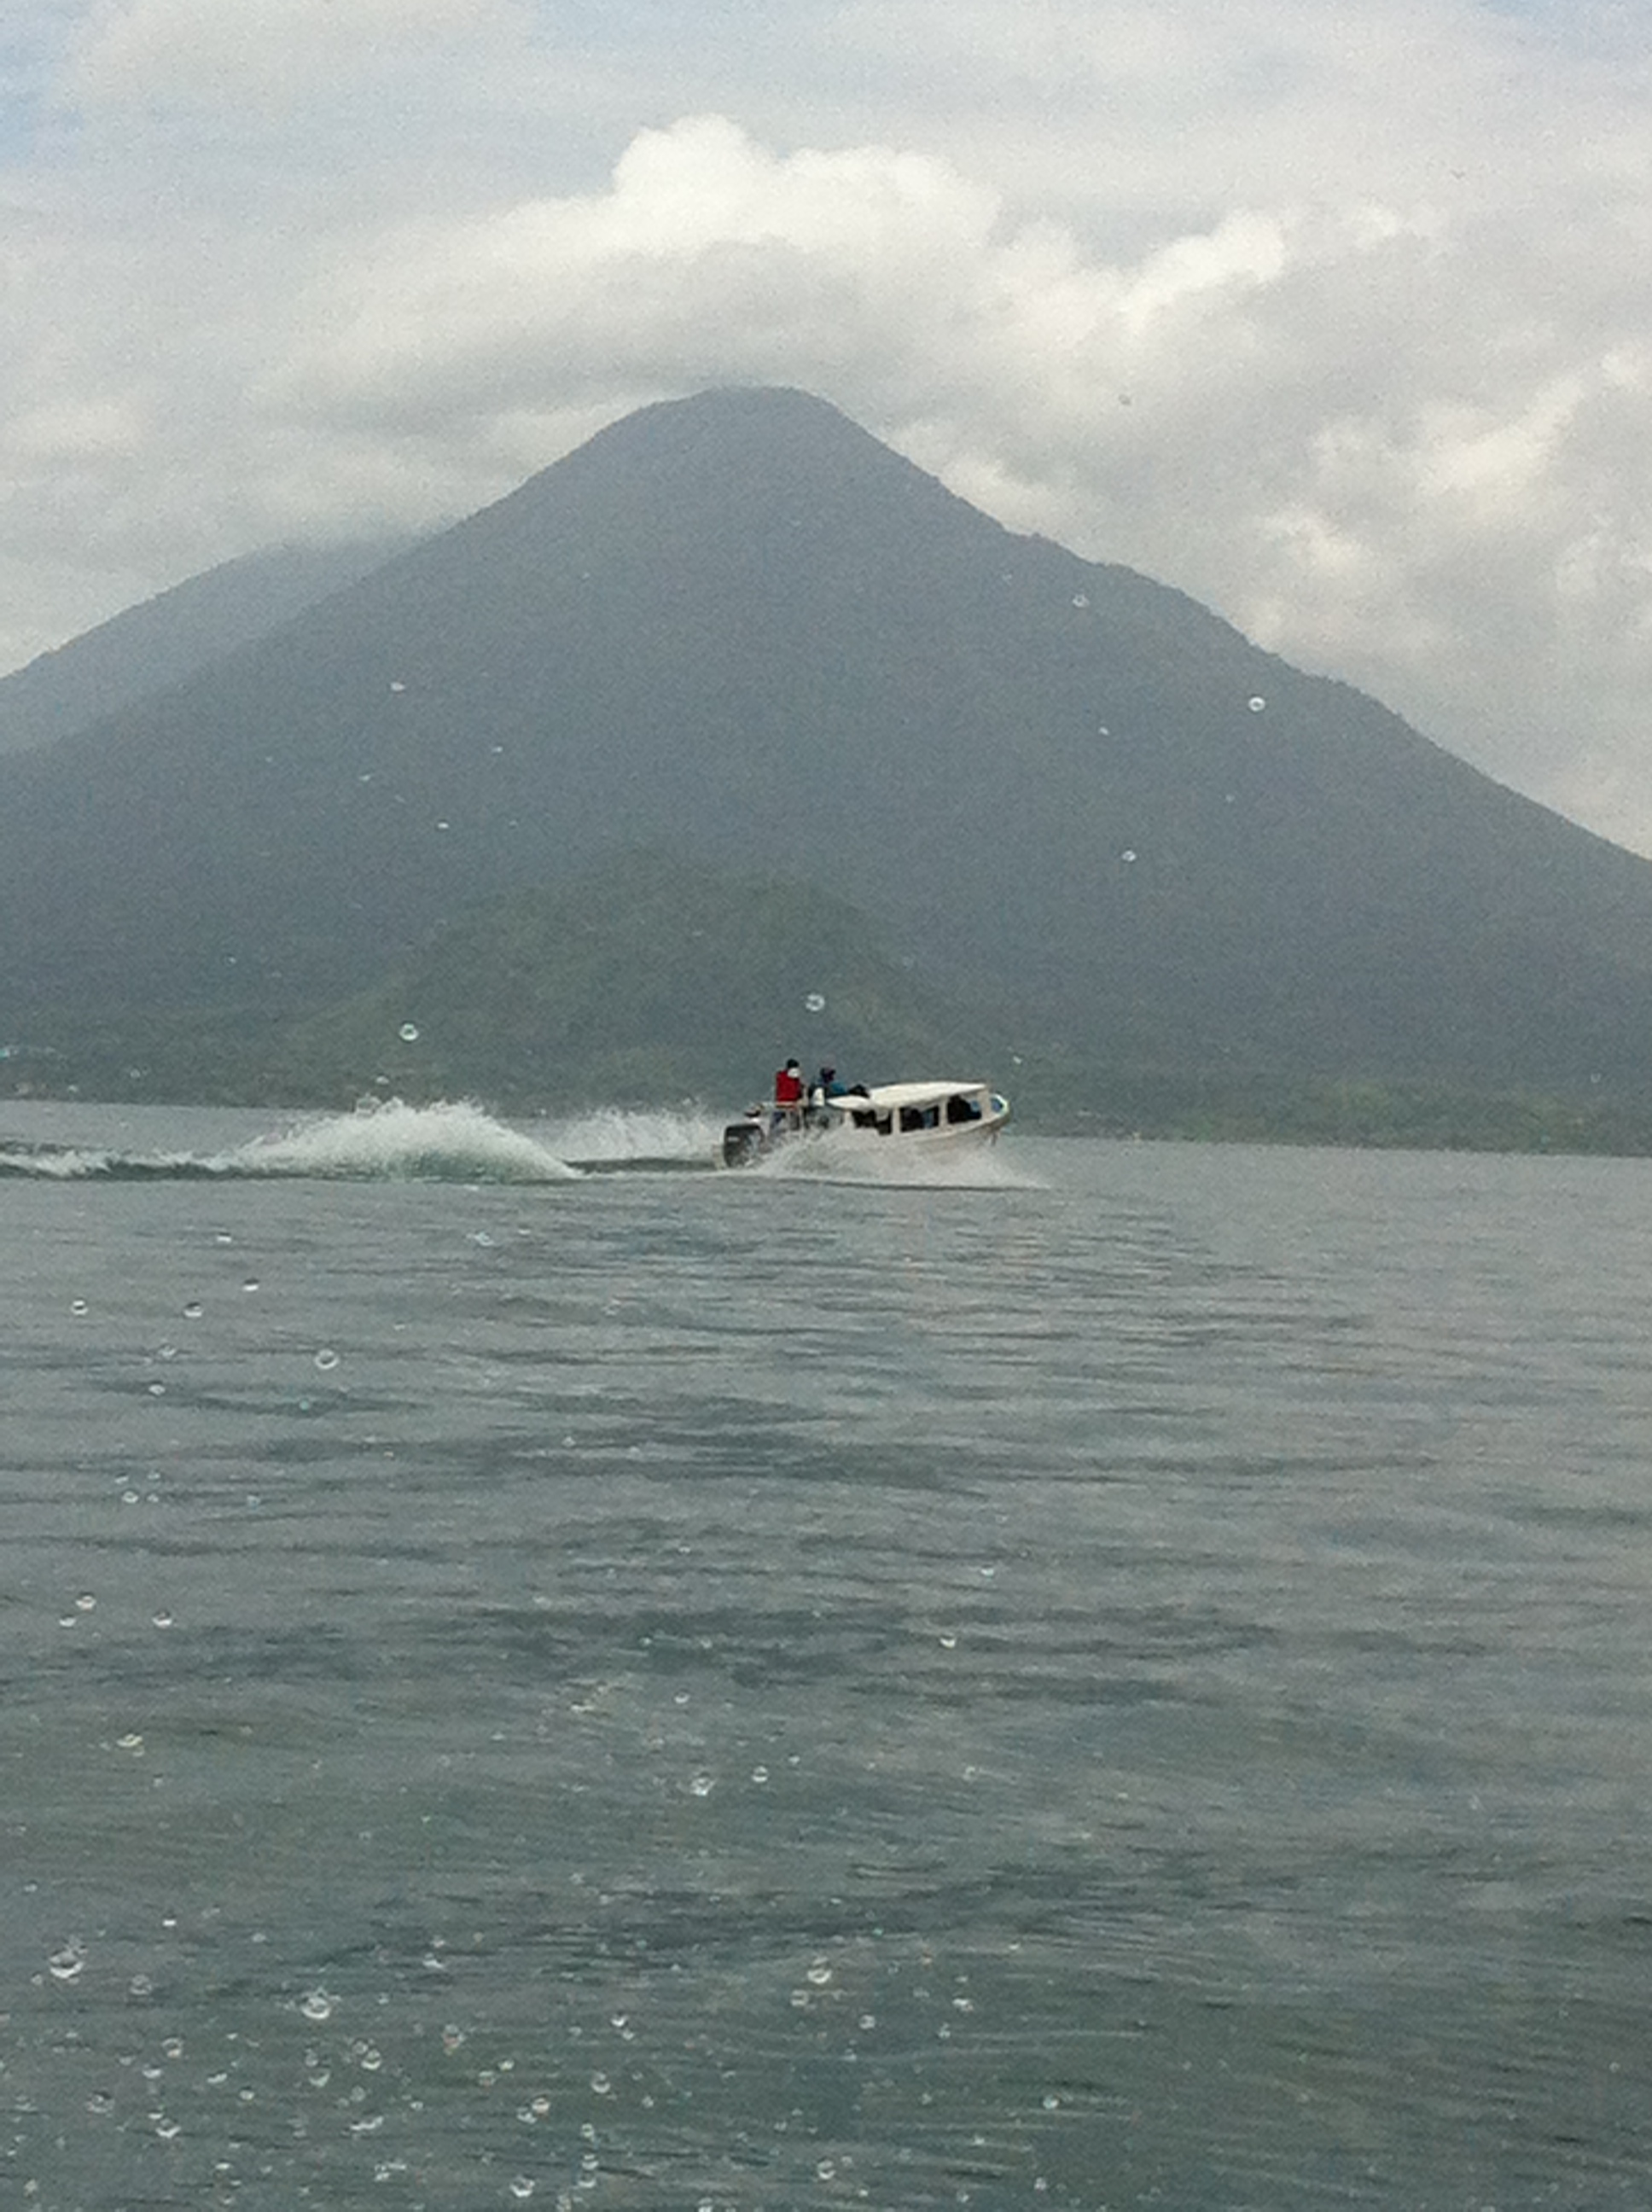 Boat ride on Lake Atitlan while volunteering in Guatemala